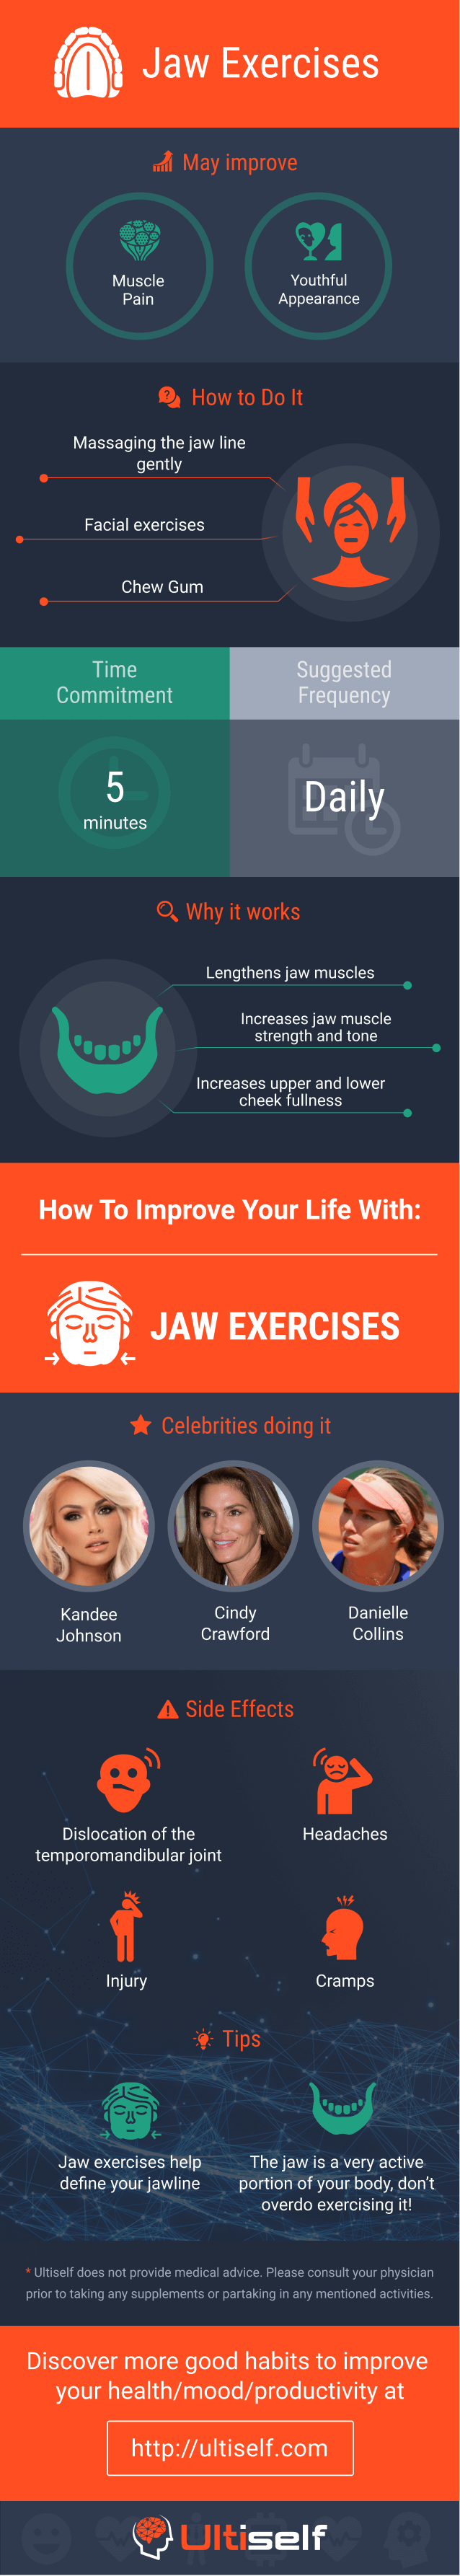 Jaw exercise infographic